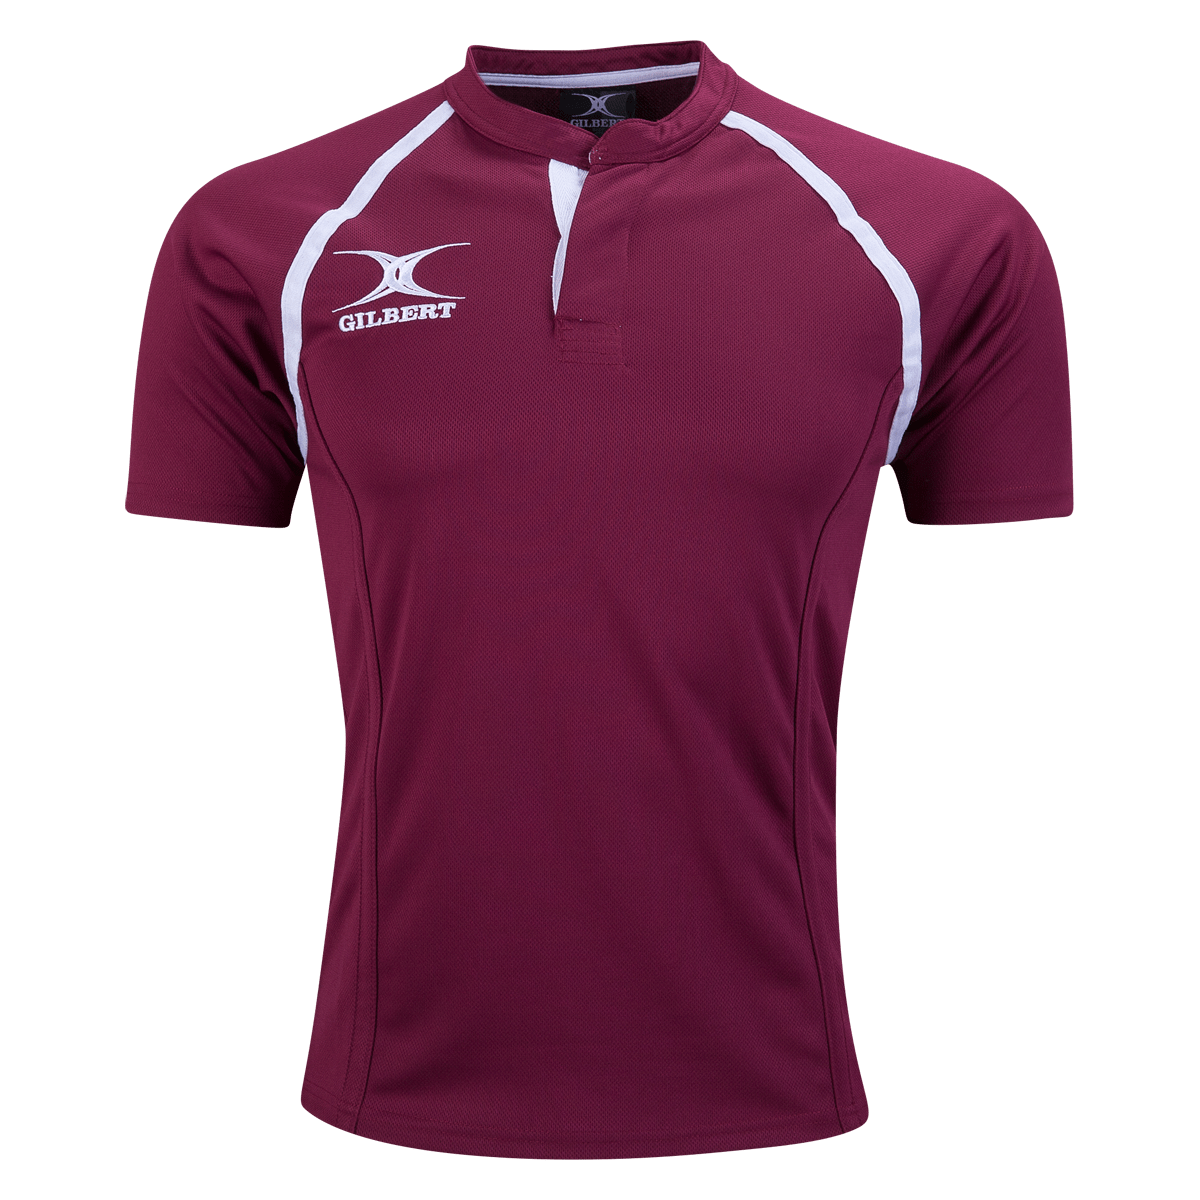 Gilbert Maroon Xact Premier Rugby Jersey With White Logo